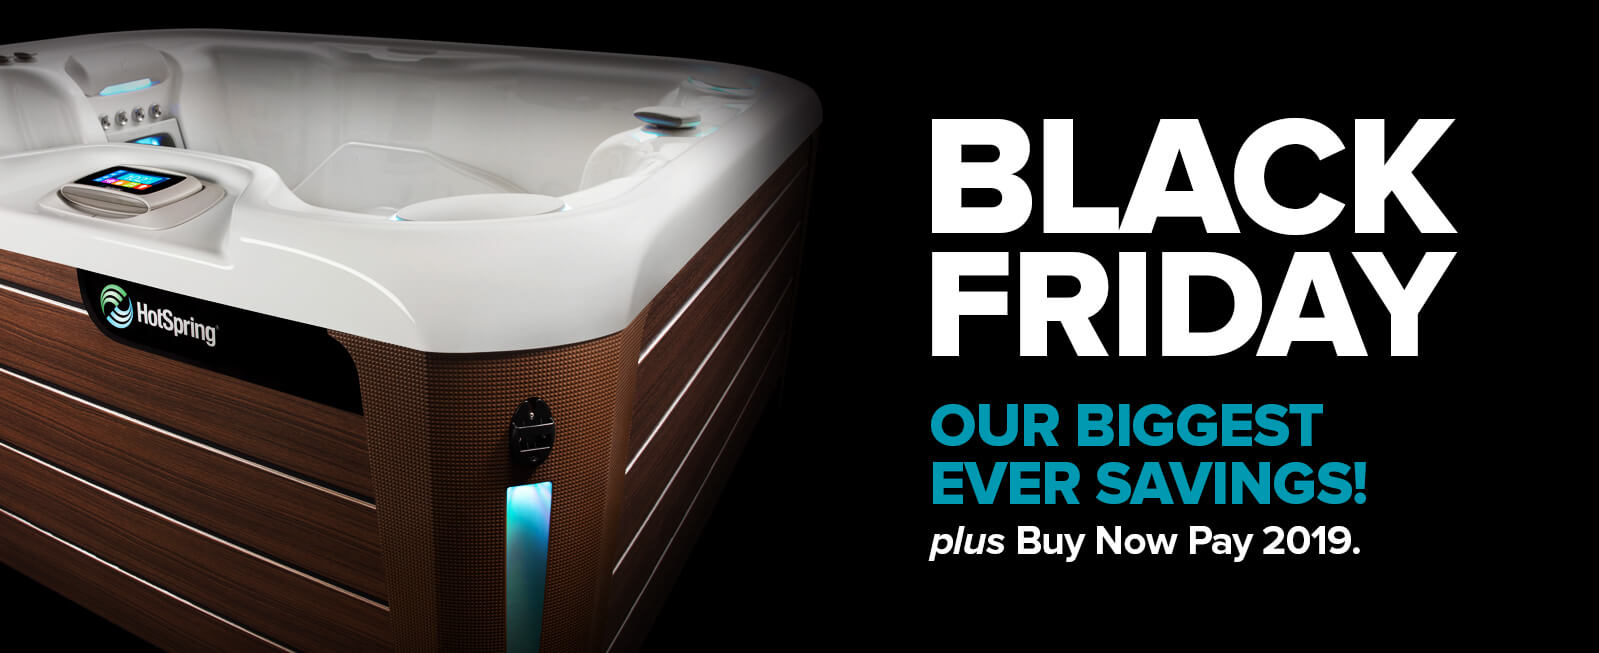 discount this biggest discounts direct email news friday fri banner year deals tub hot s jacuzzi black blogs